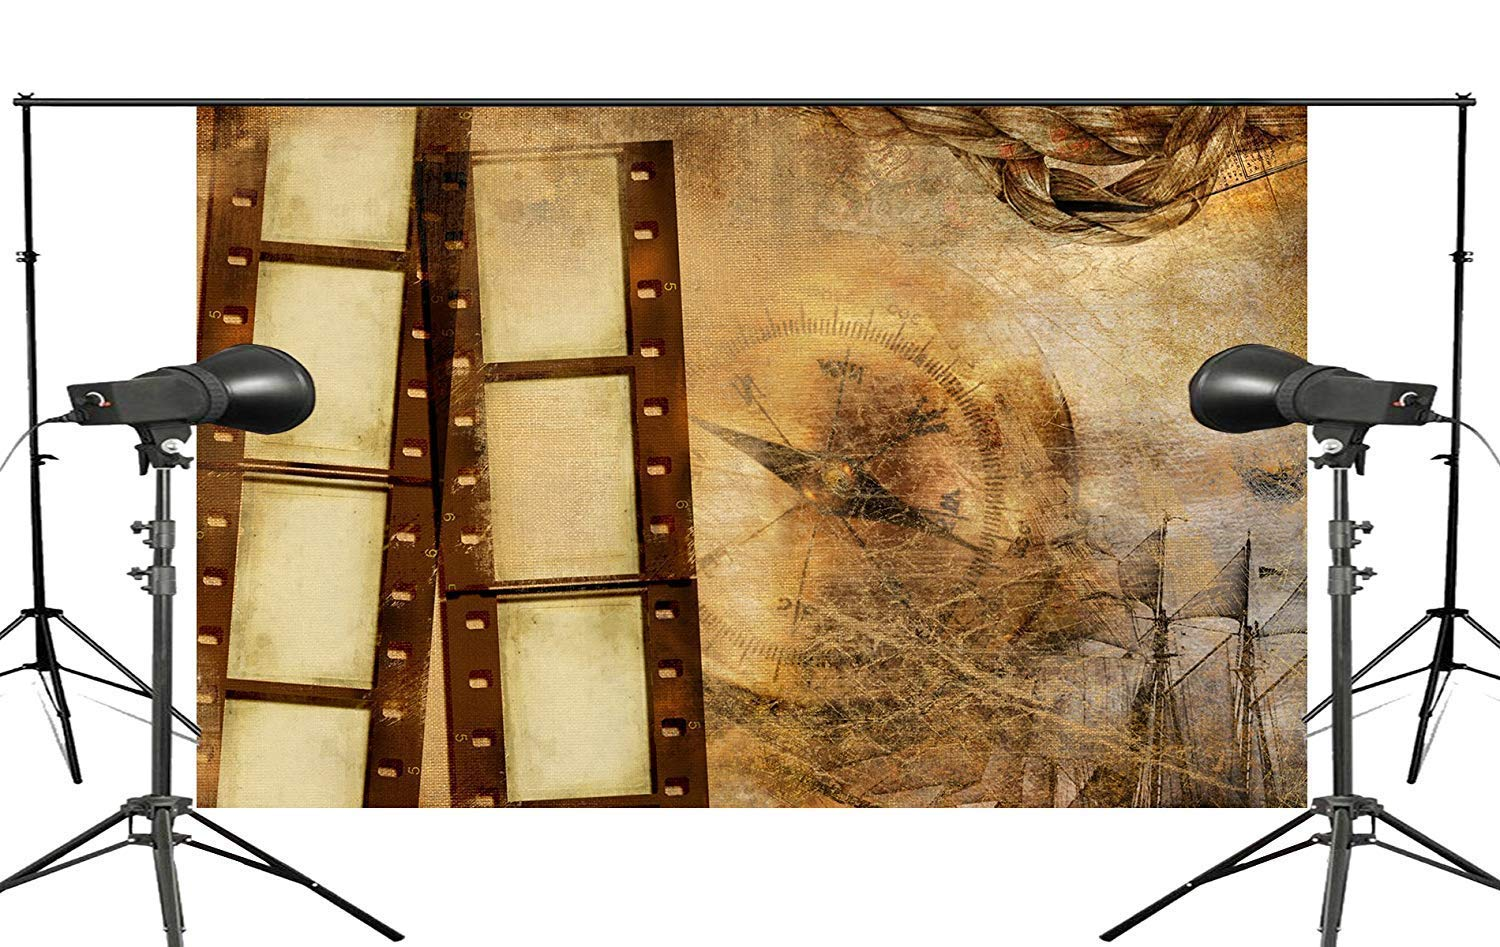 ERTIANANG Exquisite Old Wallpaper Wall Painting with Roll Studio Props Photography Background Retro Photo Backdrop 5x7ft